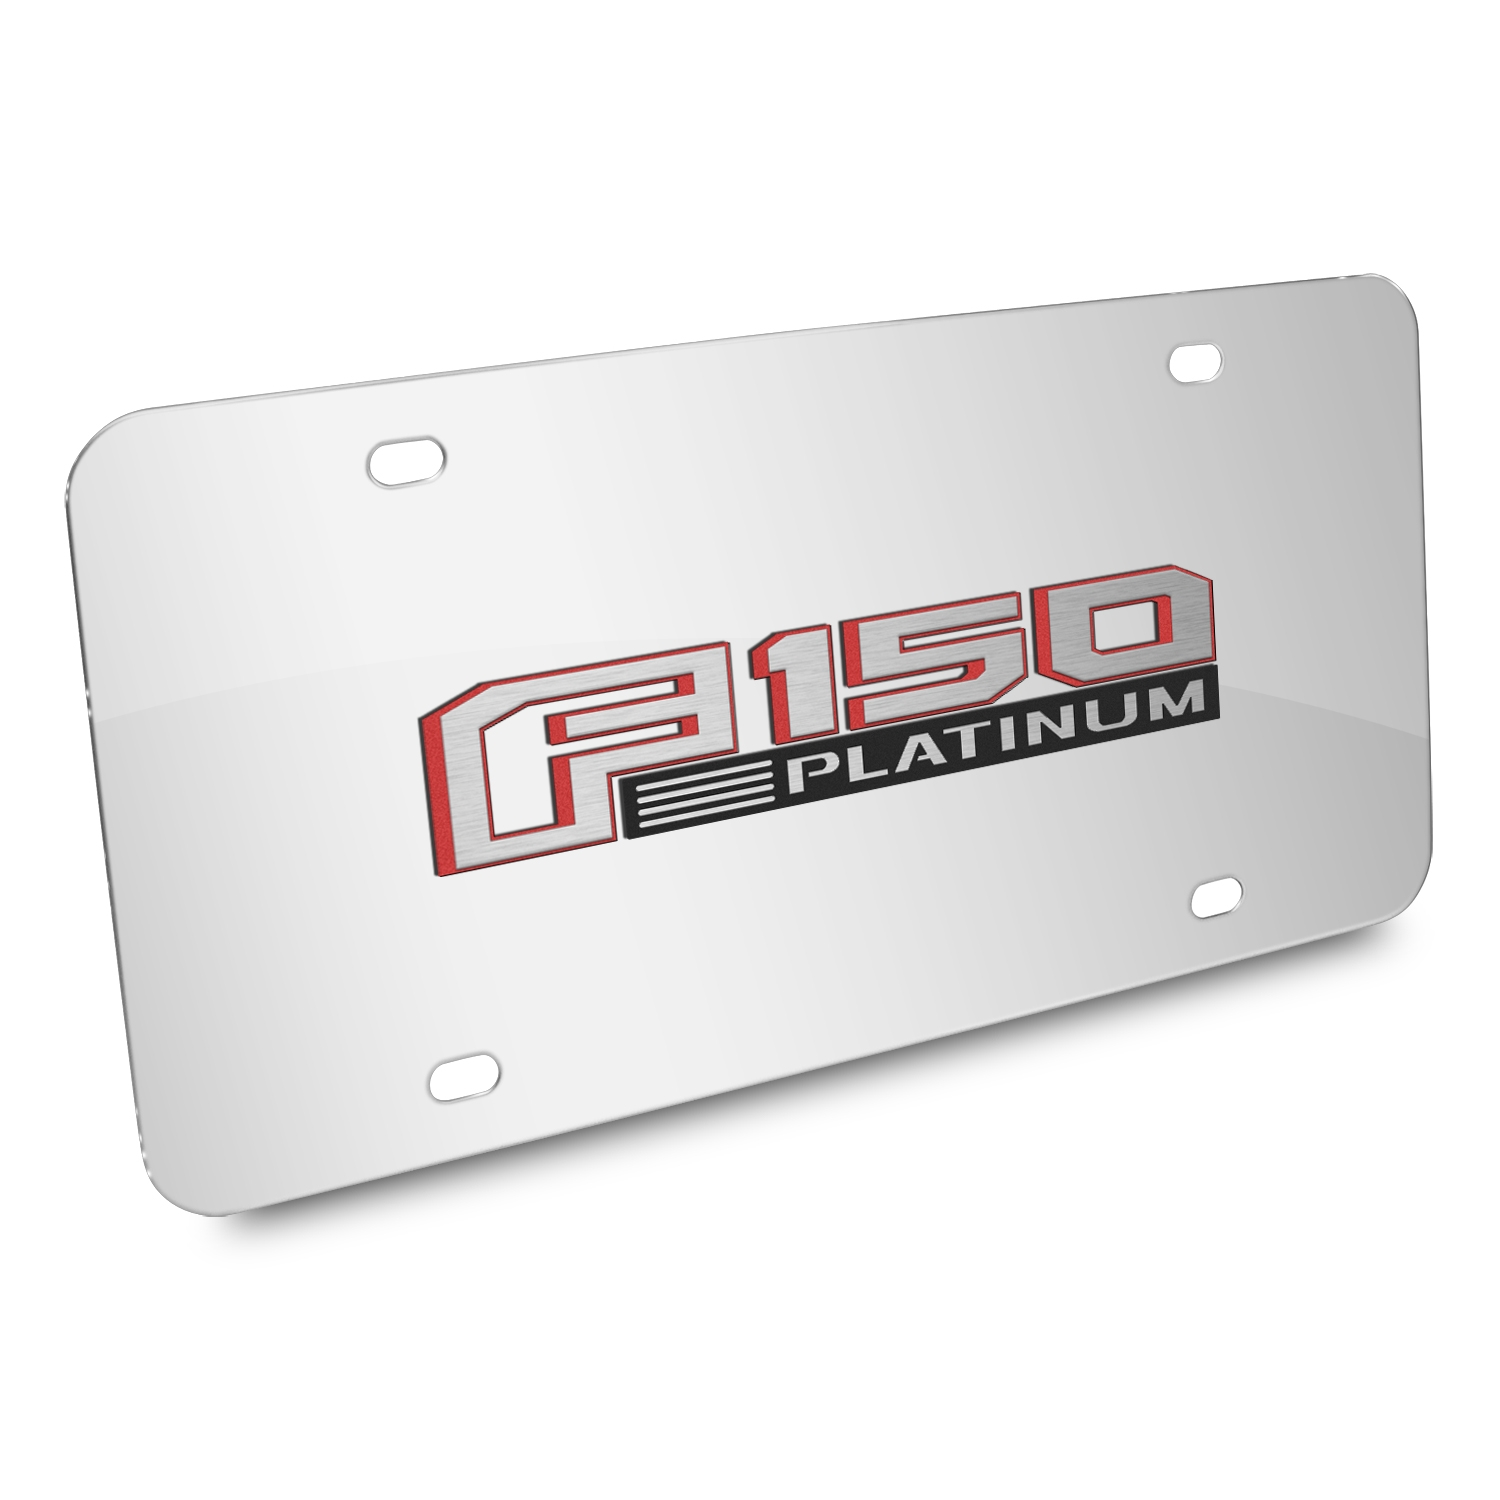 Ford 150 Platinum in Red 3D Mirror Chrome Stainless Steel License Plate